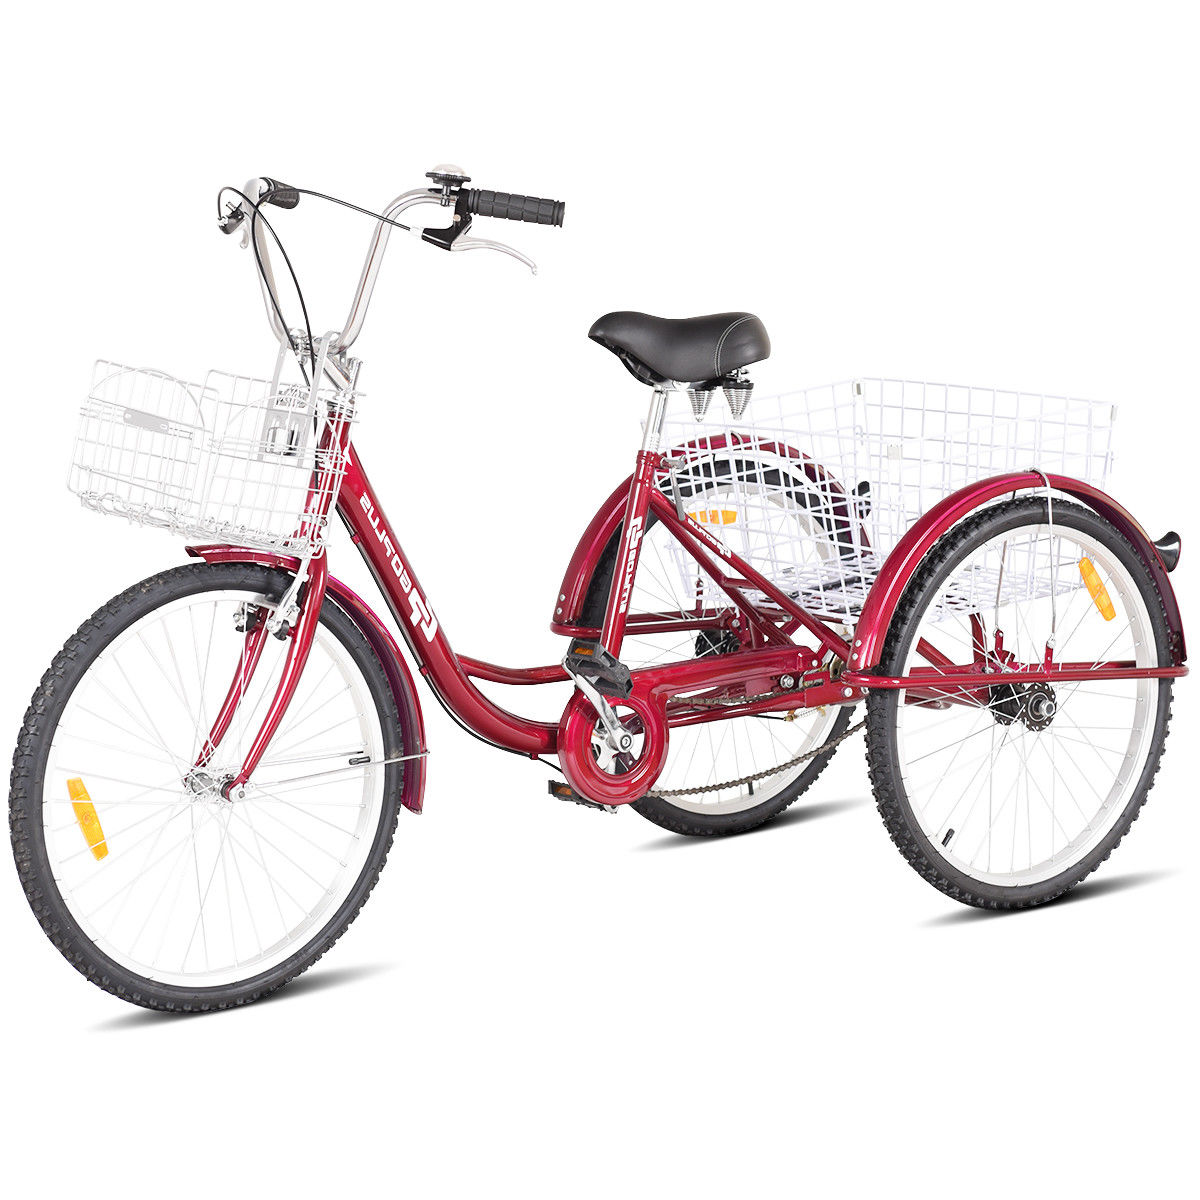 Goplus 26'' Single Speed 3-wheel Bicycle Adult Tricycle Seat Height Adjustable w/ Bell